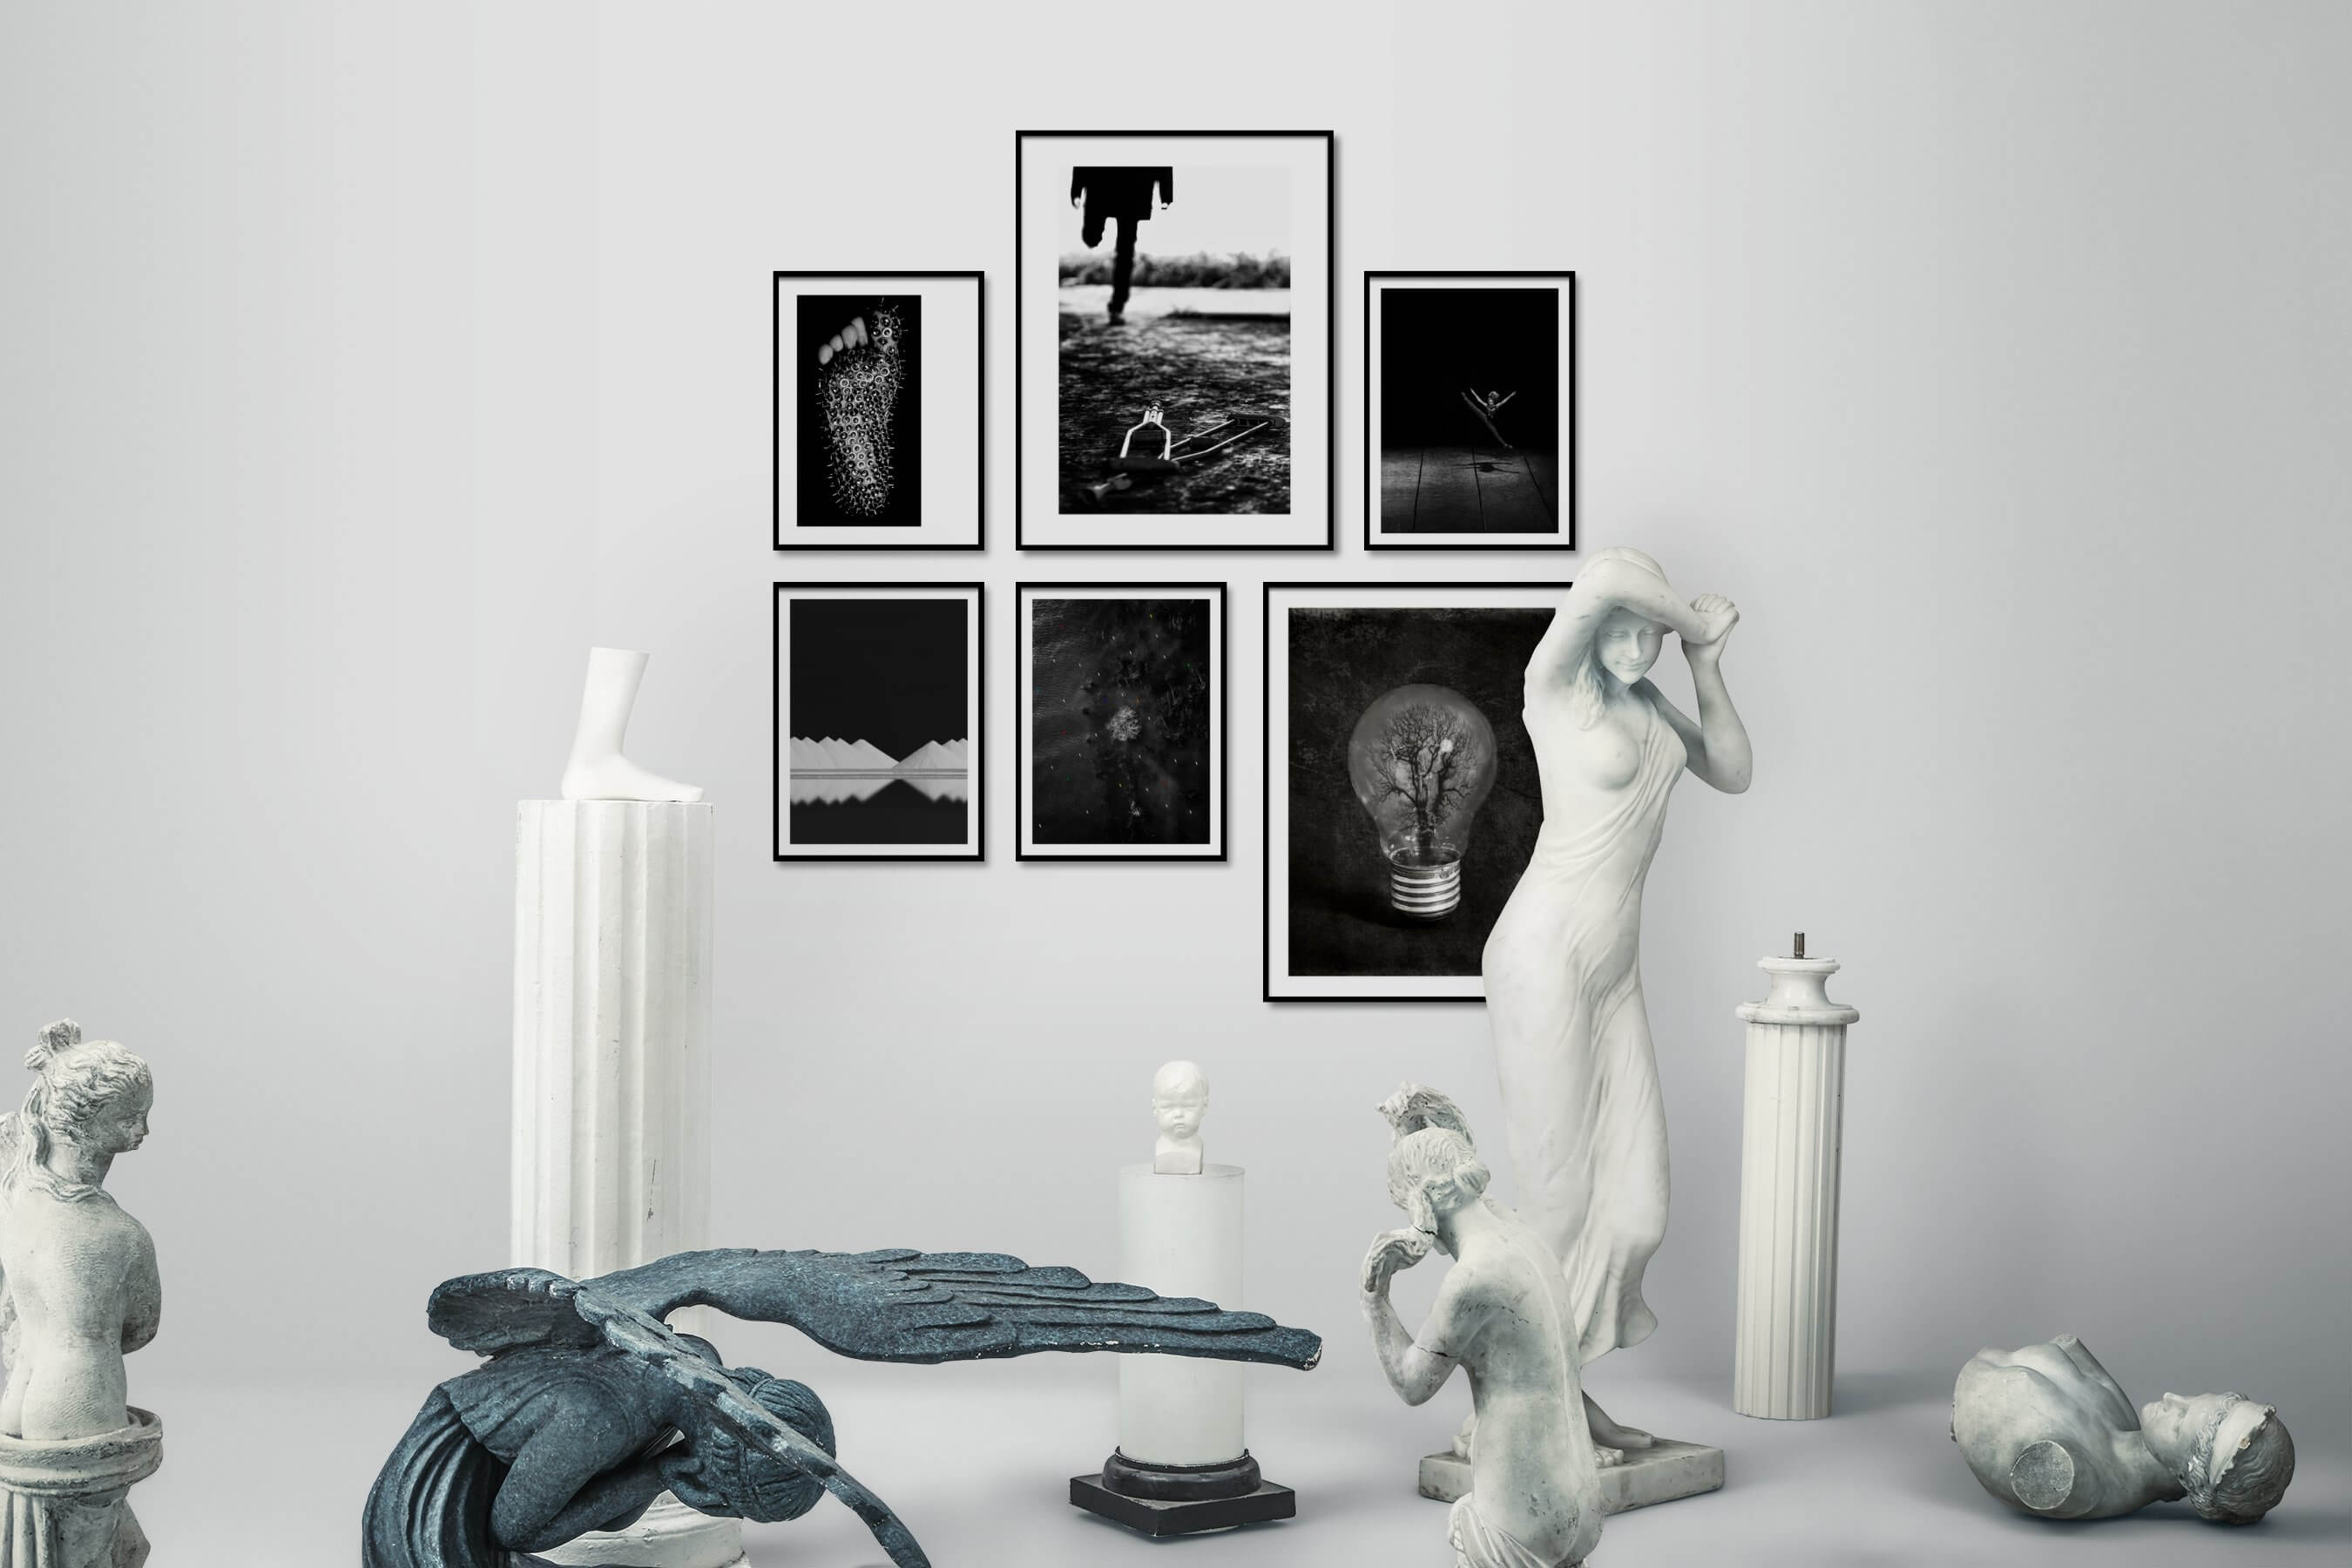 Gallery wall idea with six framed pictures arranged on a wall depicting Artsy, Black & White, For the Minimalist, Nature, For the Moderate, and Fashion & Beauty